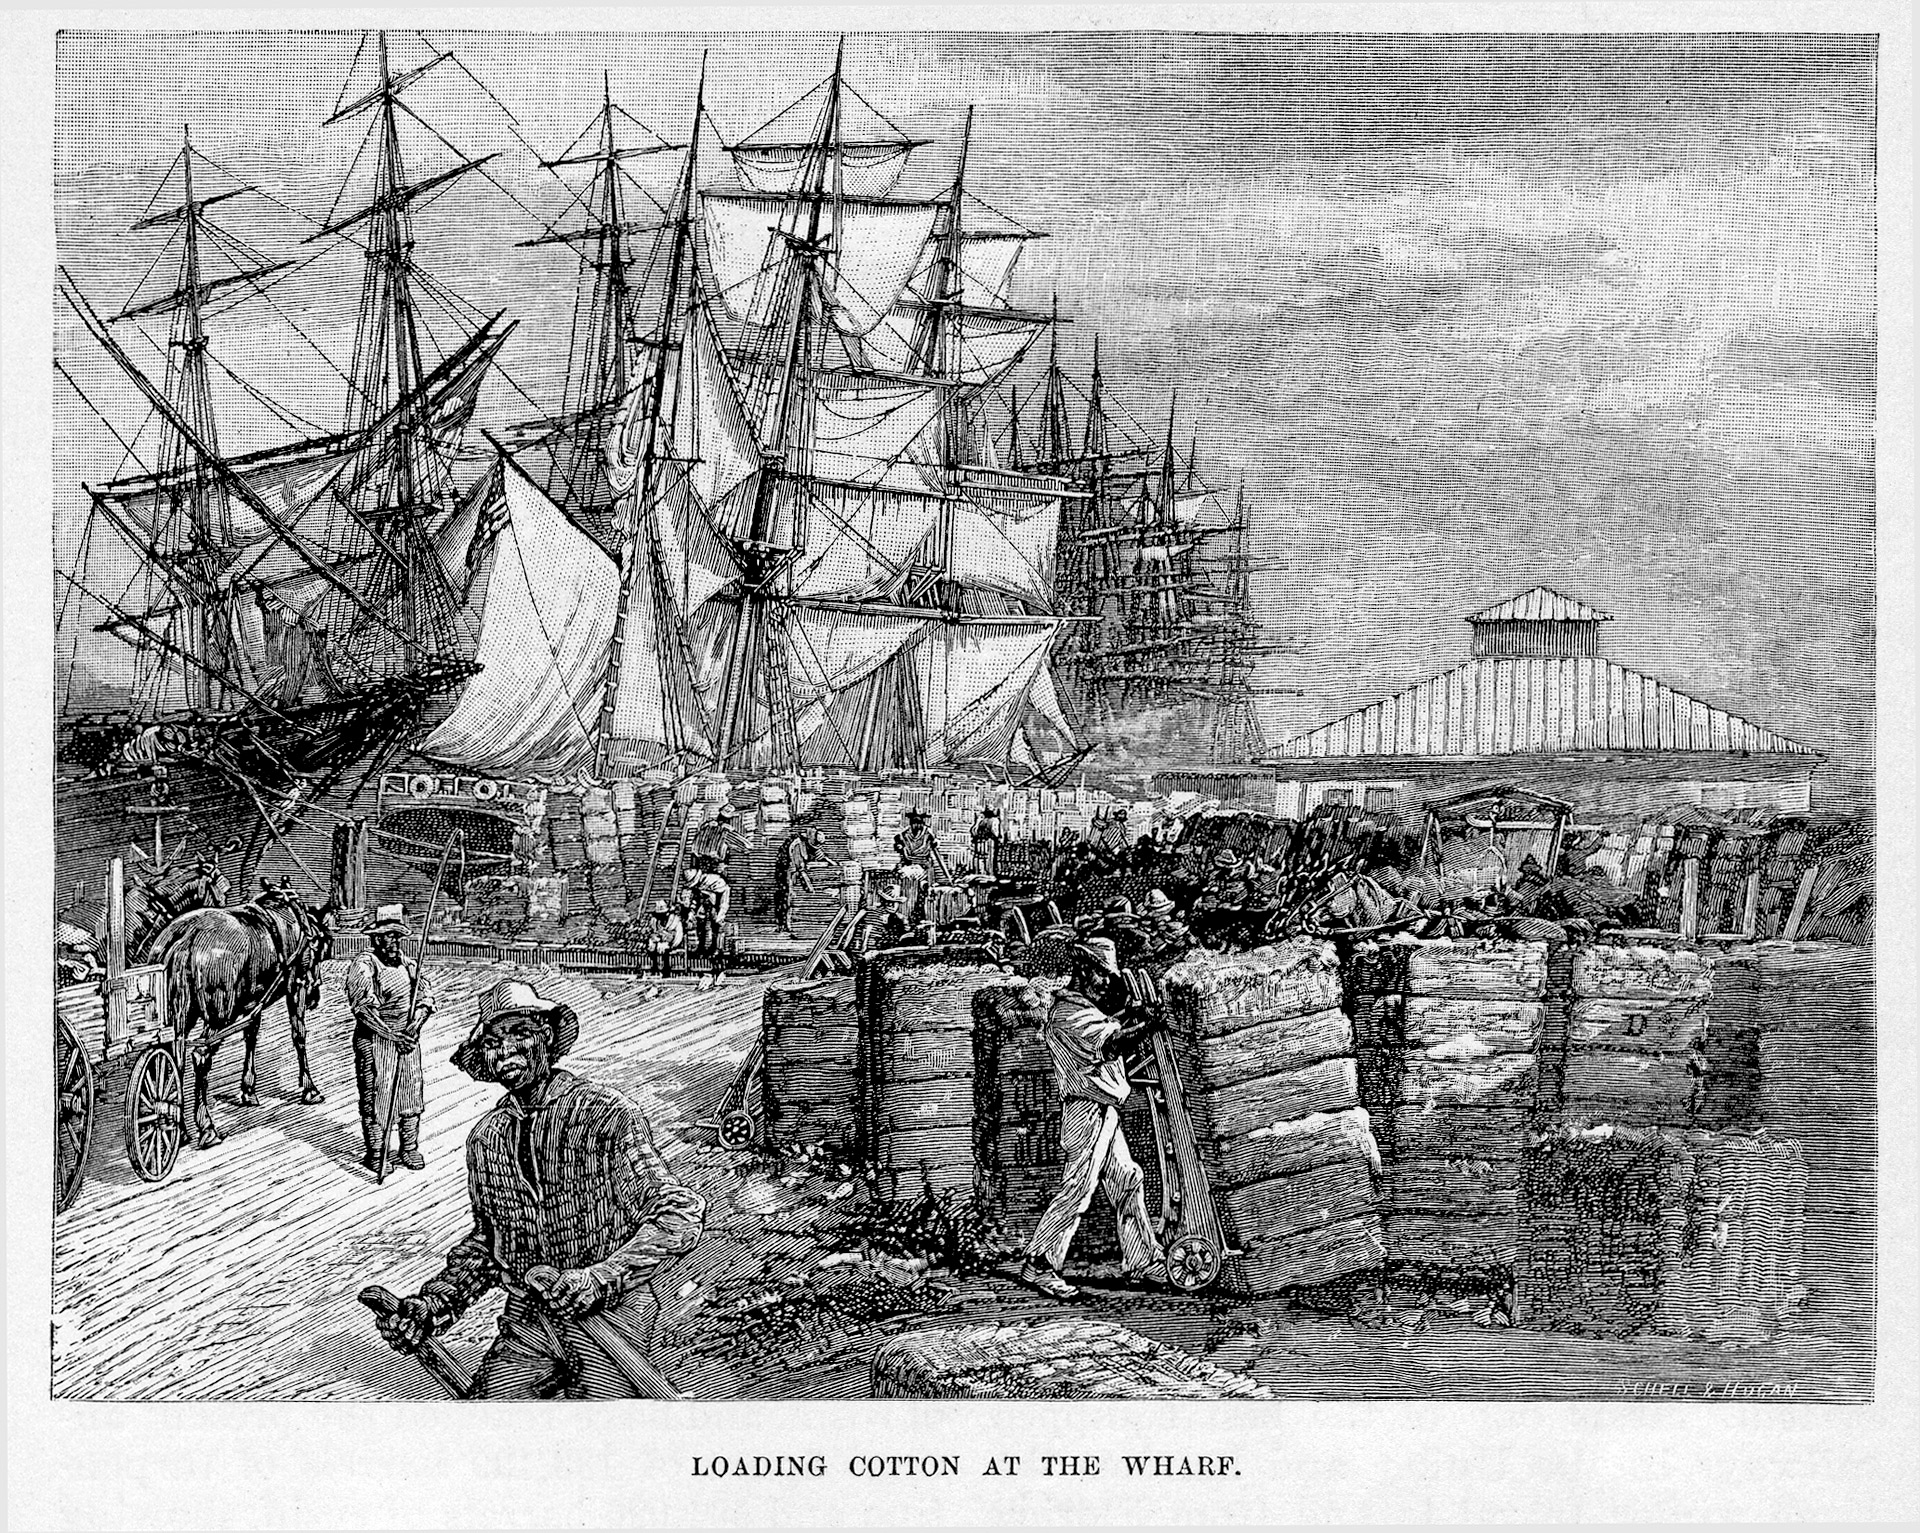 Loading Cotton at the Wharf, Harper's 1888